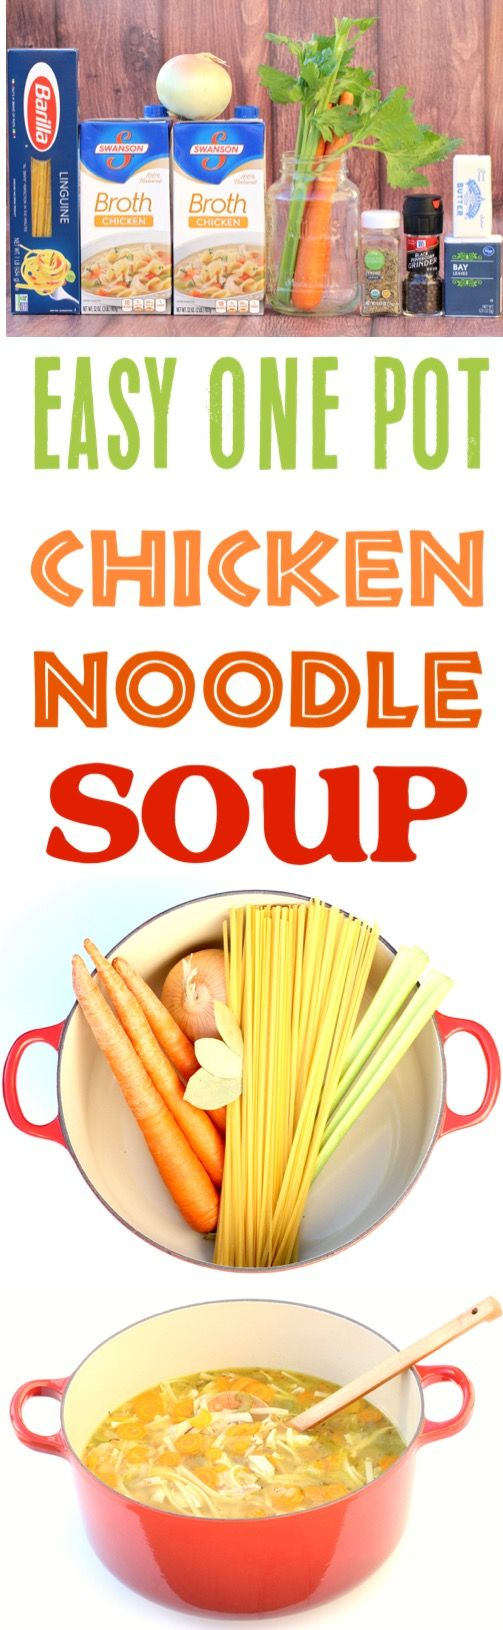 Chicken Noodle Soup Easy Homemade Recipe!  This delicious One Pot dutch oven soup is so simple to make and SO delicious!!  Add it to your menu this week!